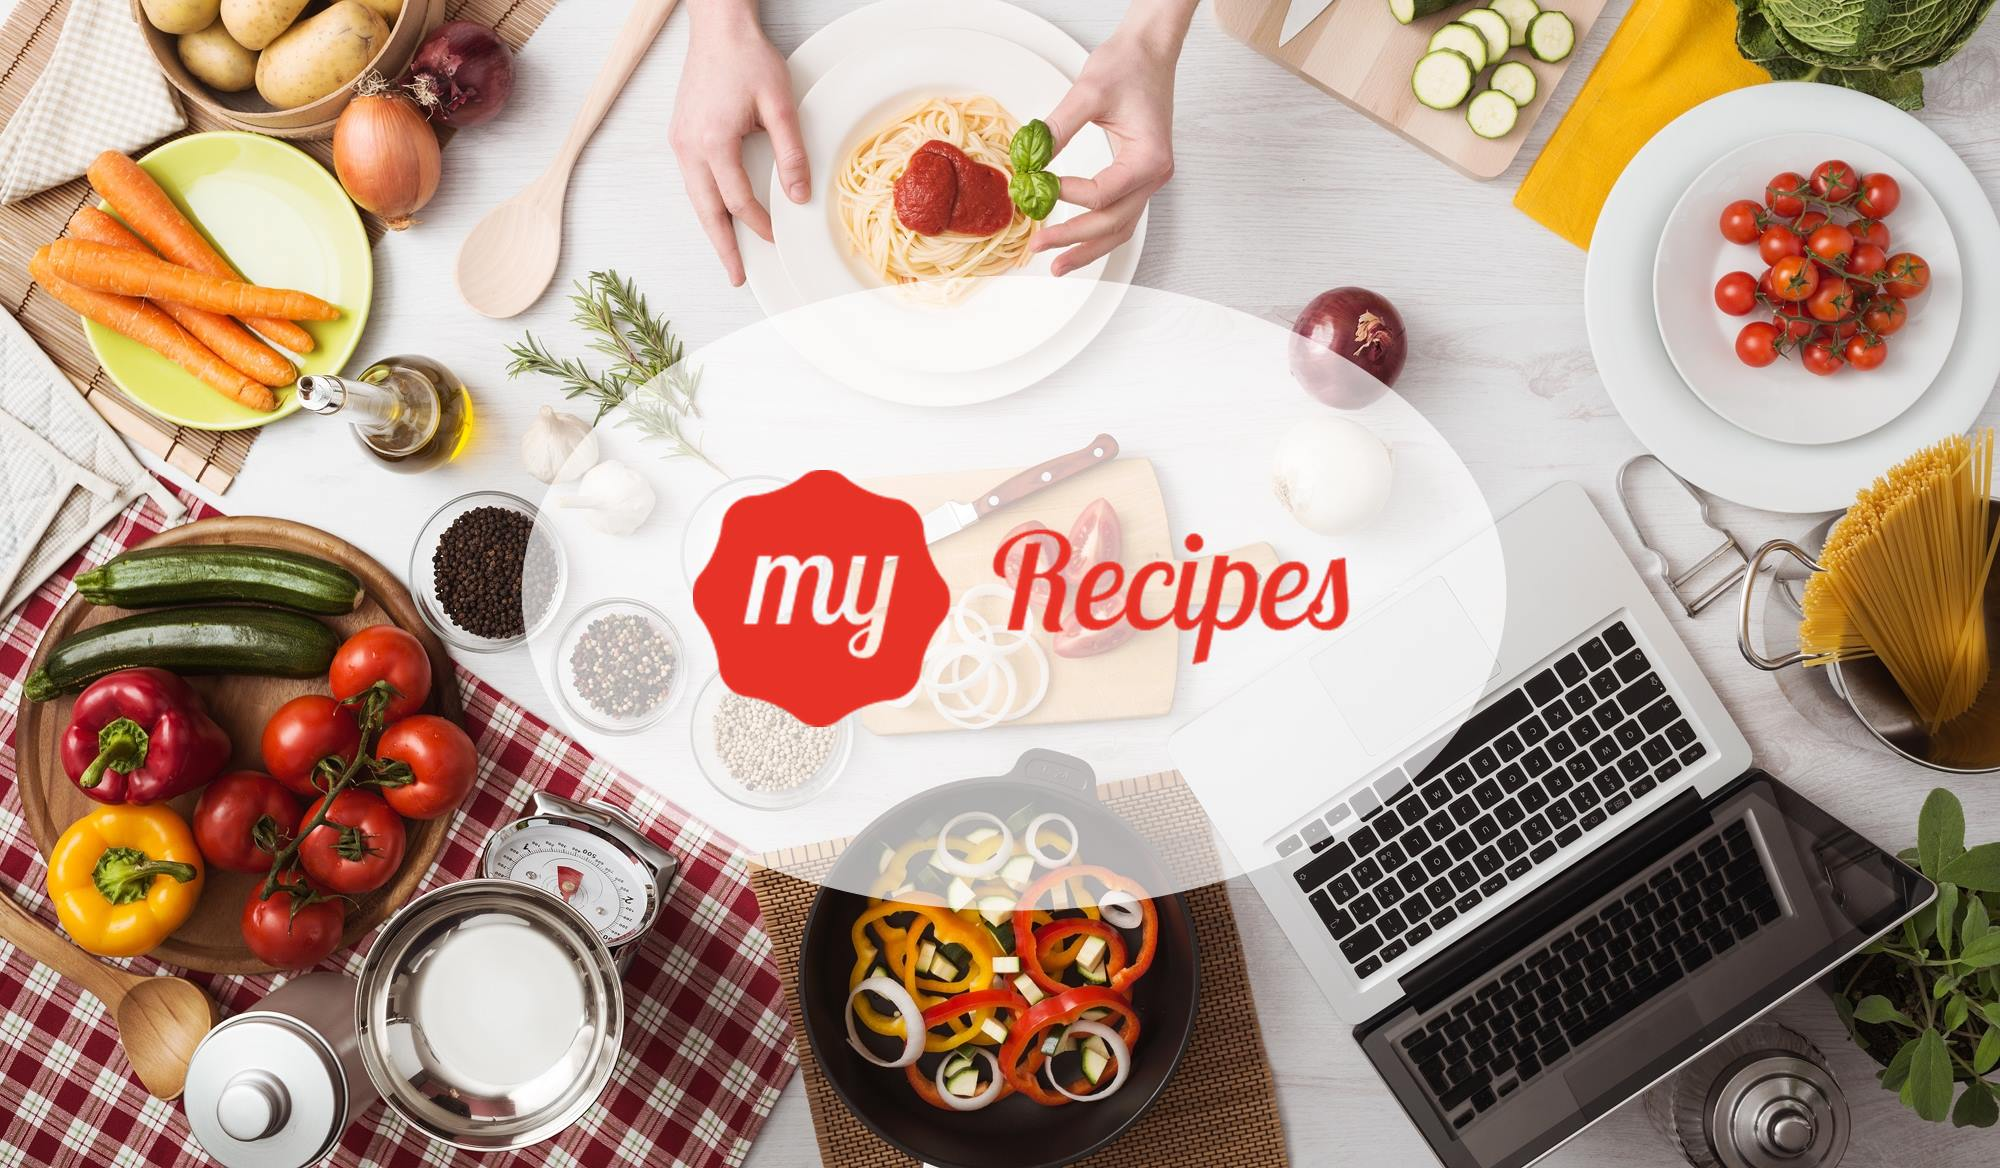 recipes wallpaper